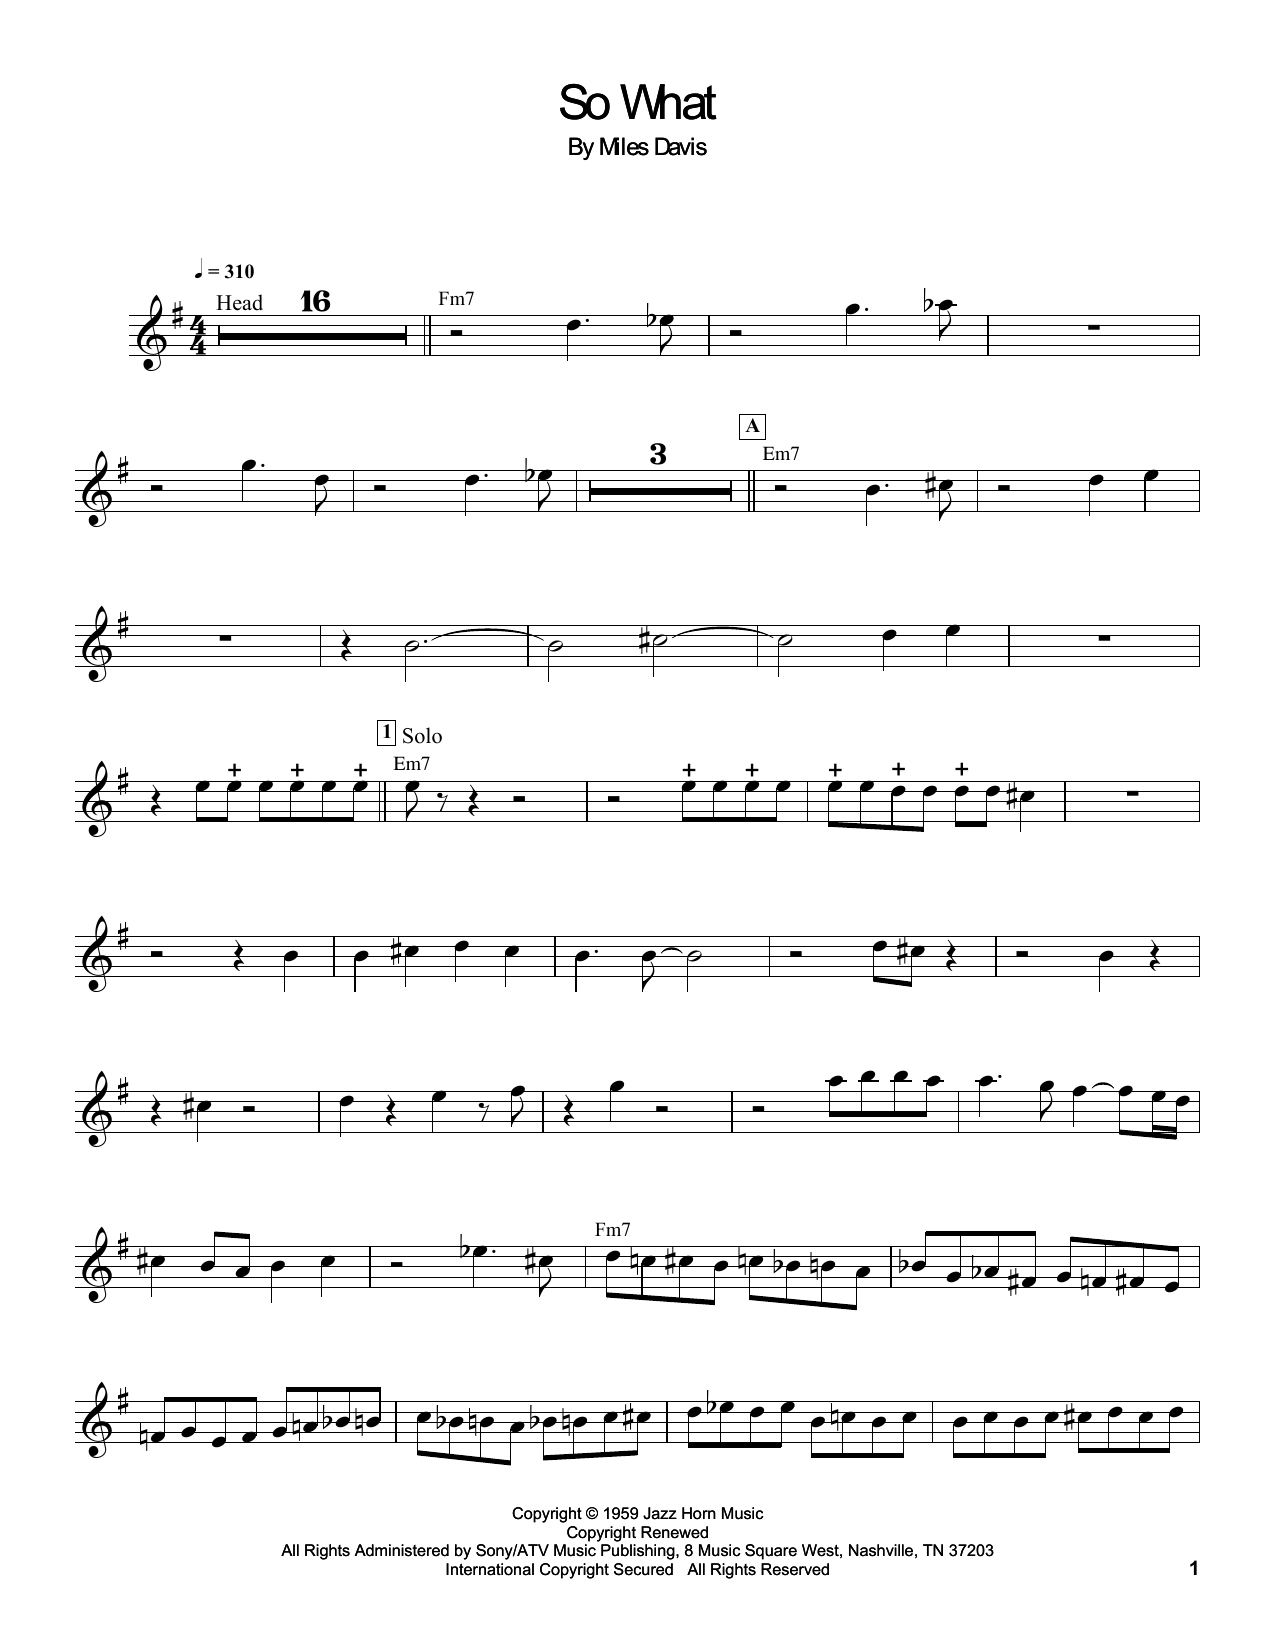 So What Sheet Music